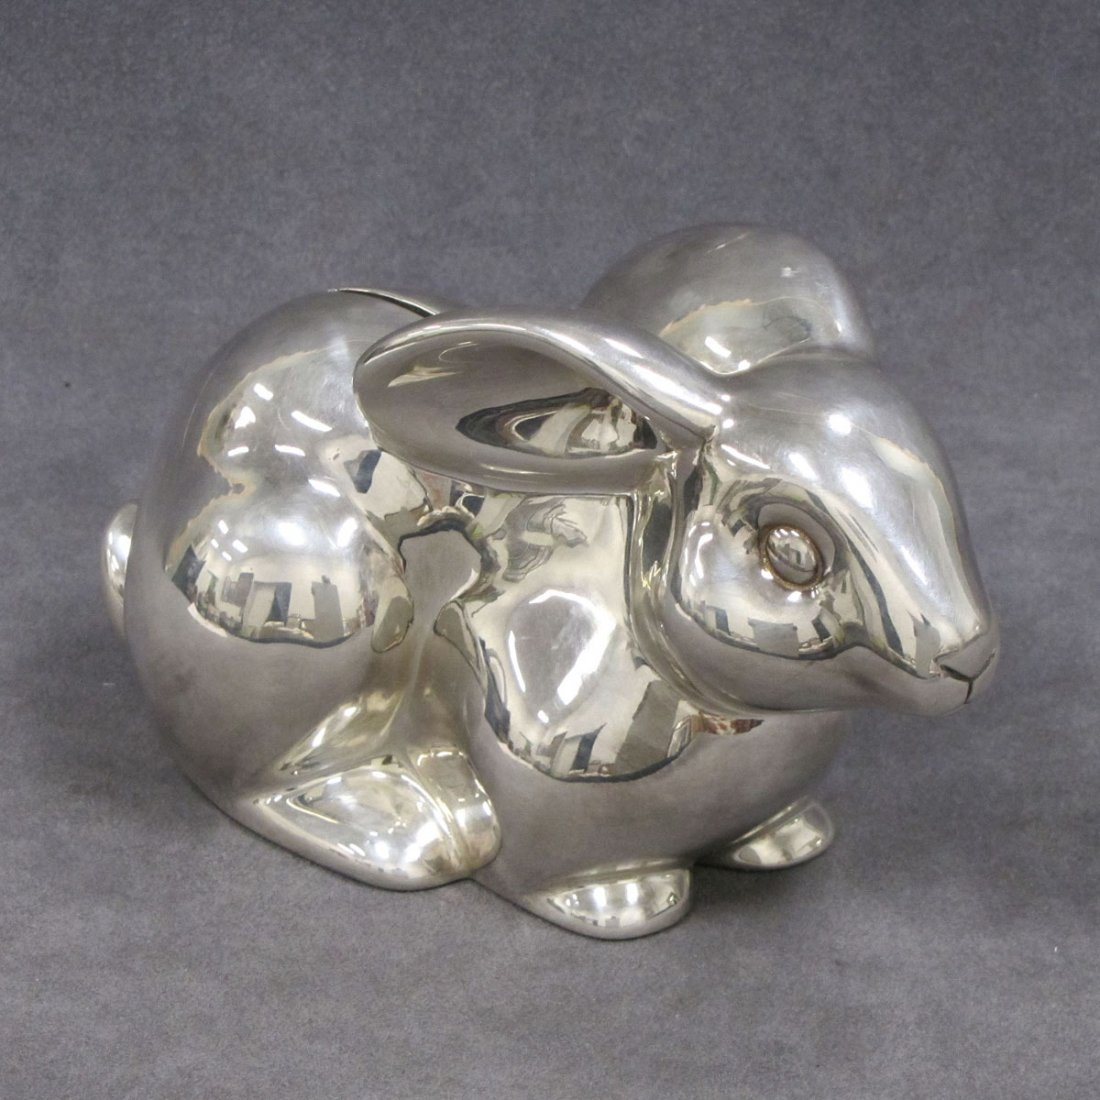 TIFFANY & CO. STERLING SILVER RABBIT COIN BANK